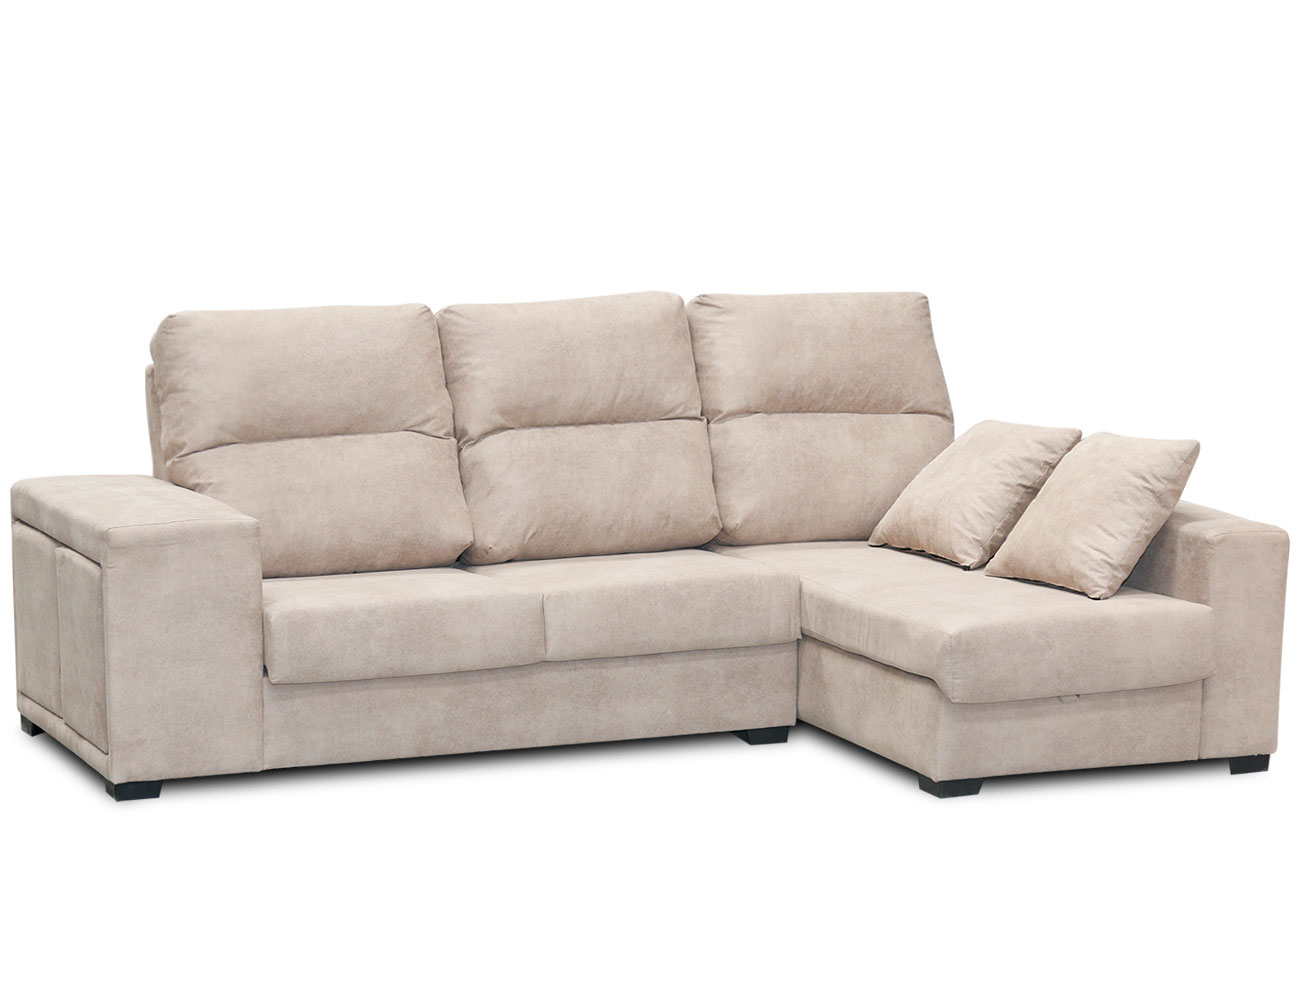 Sofa chaiselongue arcon puffs taburetes